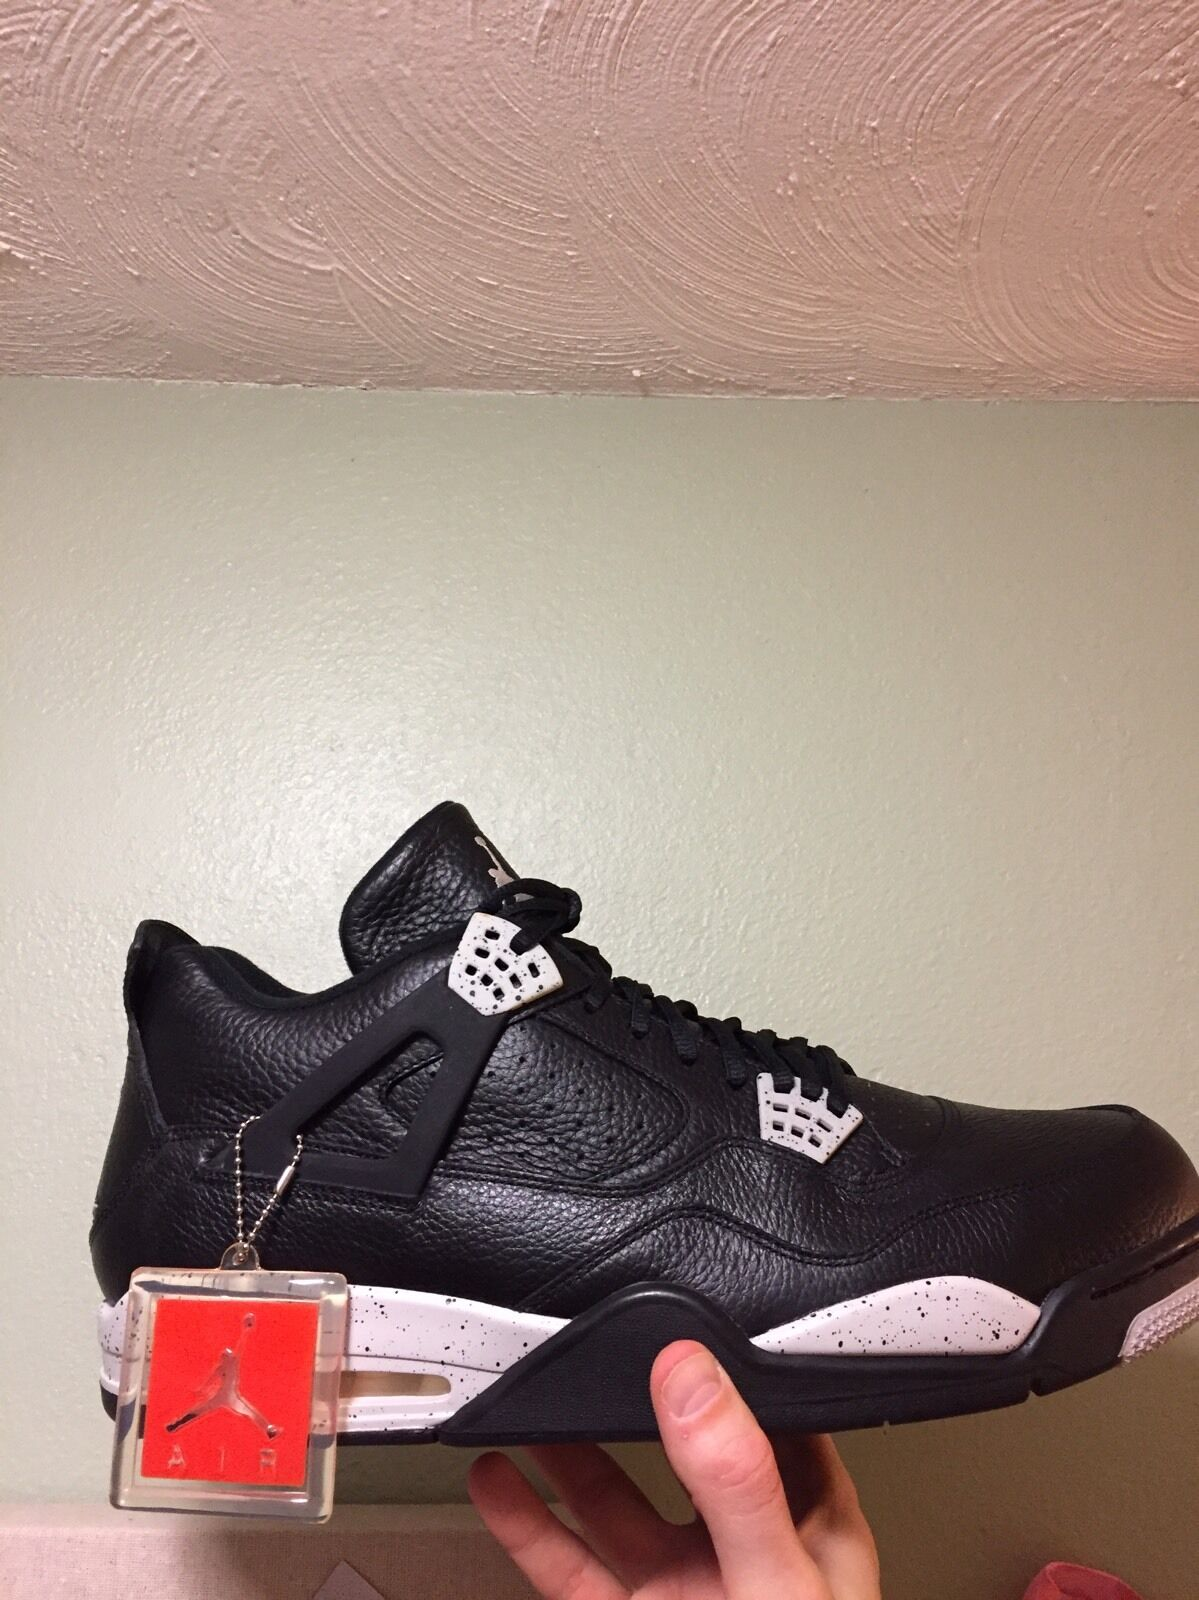 Men's Nike Air Jordan 4 Retro LS Size 18 (314254 003)